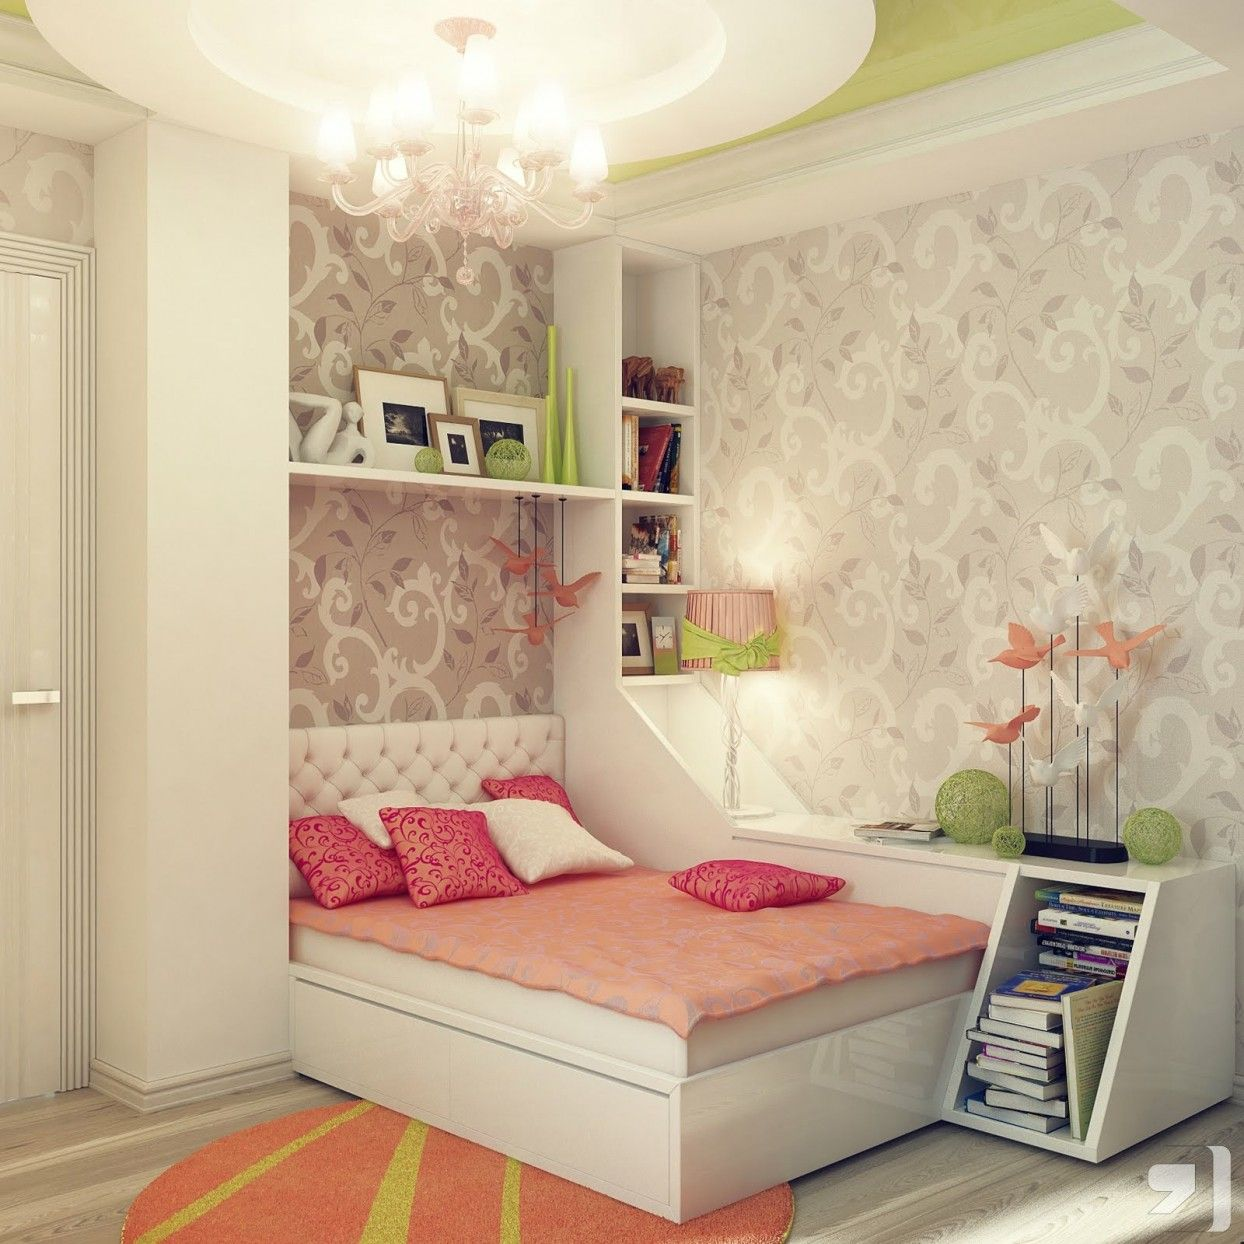 Teens Room Adorable Natural Teenage Girl Bedroom Theme With Creame Floral Wallpaper And W Teenage Girl Bedroom Designs Girl Bedroom Designs Girls Bedroom Grey